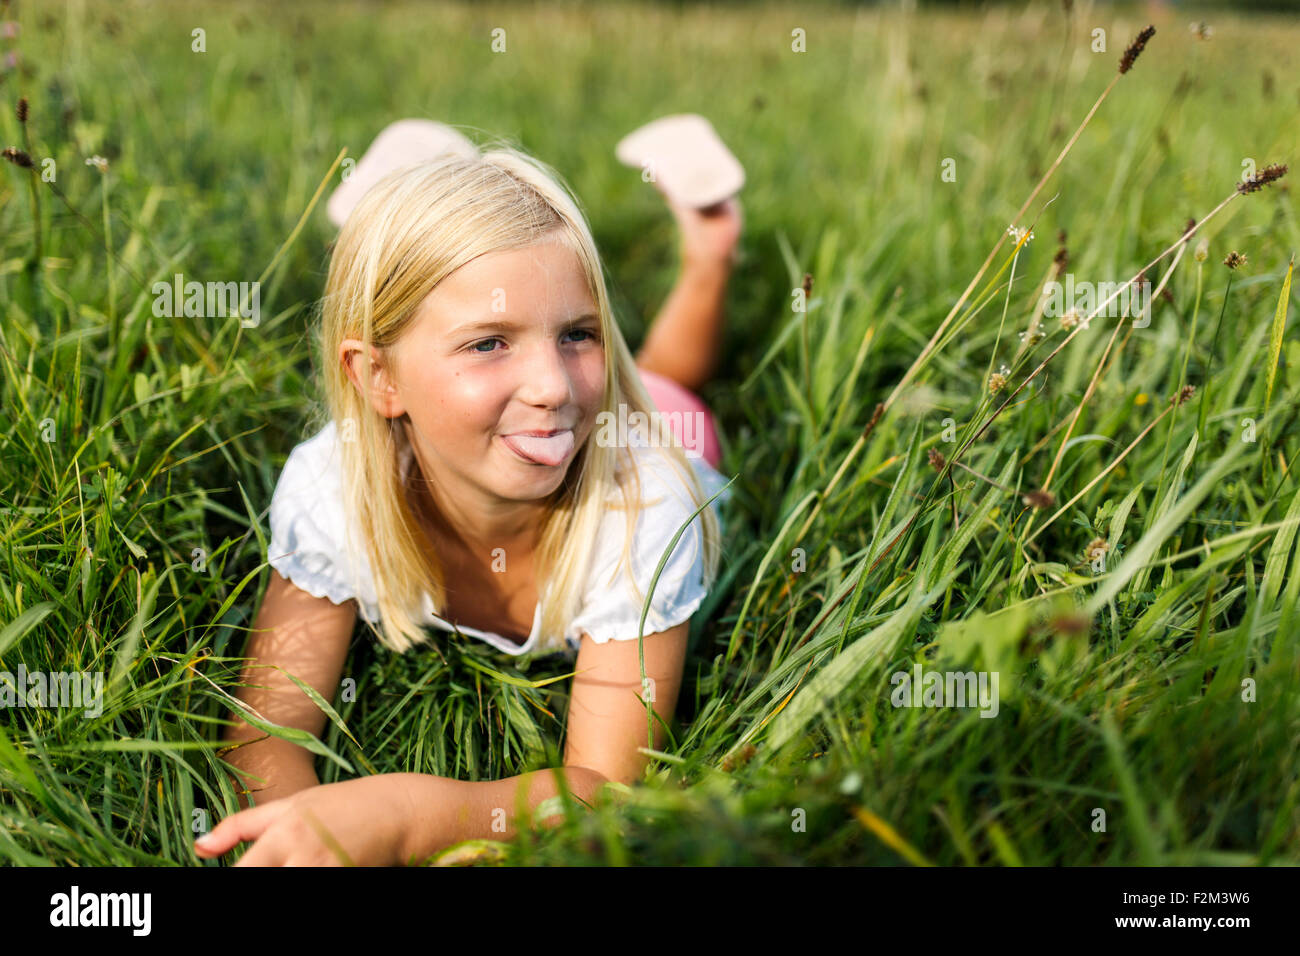 Portrait of girl lying on a meadow sticking out tongue - Stock Image